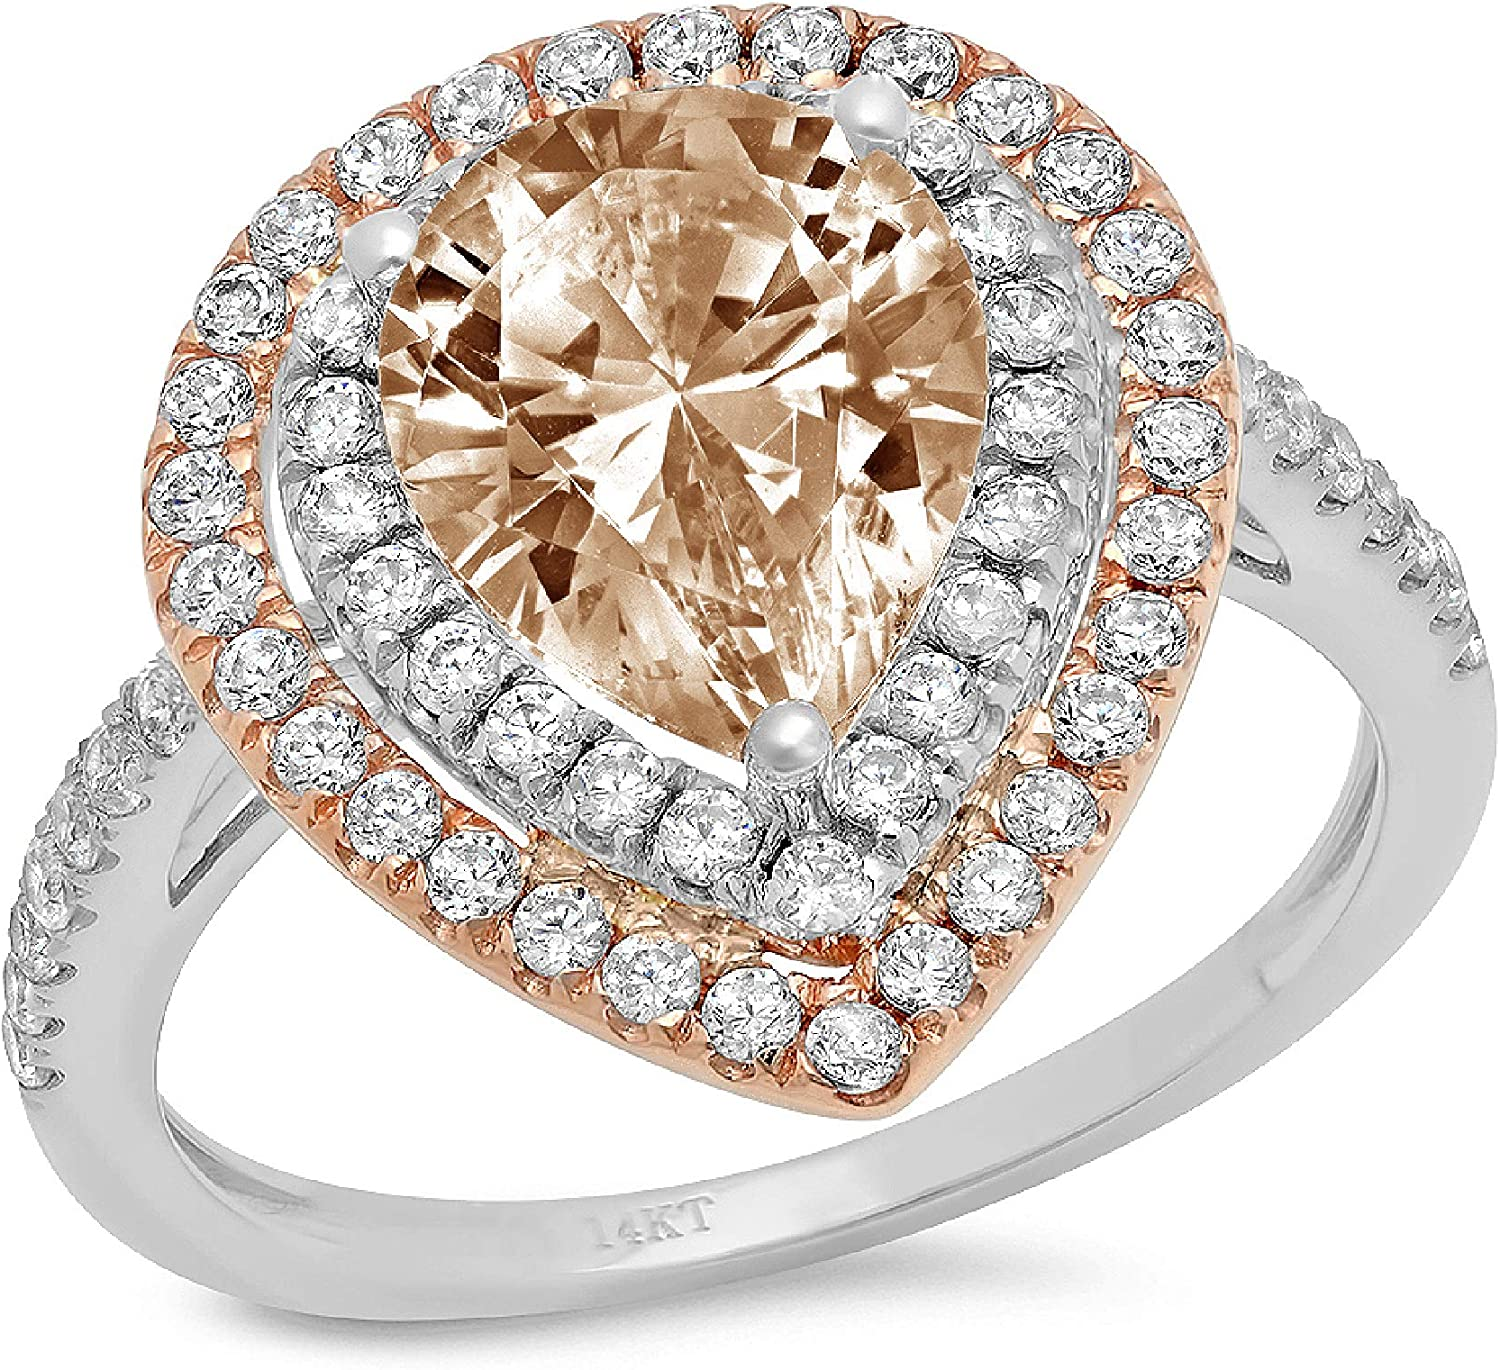 2.6ct Pear Cut Double Halo Solitaire with Accent Brown Champagne Ideal VVS1 Simulated Diamond CZ Engagement Promise Statement Anniversary Bridal Wedding Ring Solid 14k 2 tone Gold